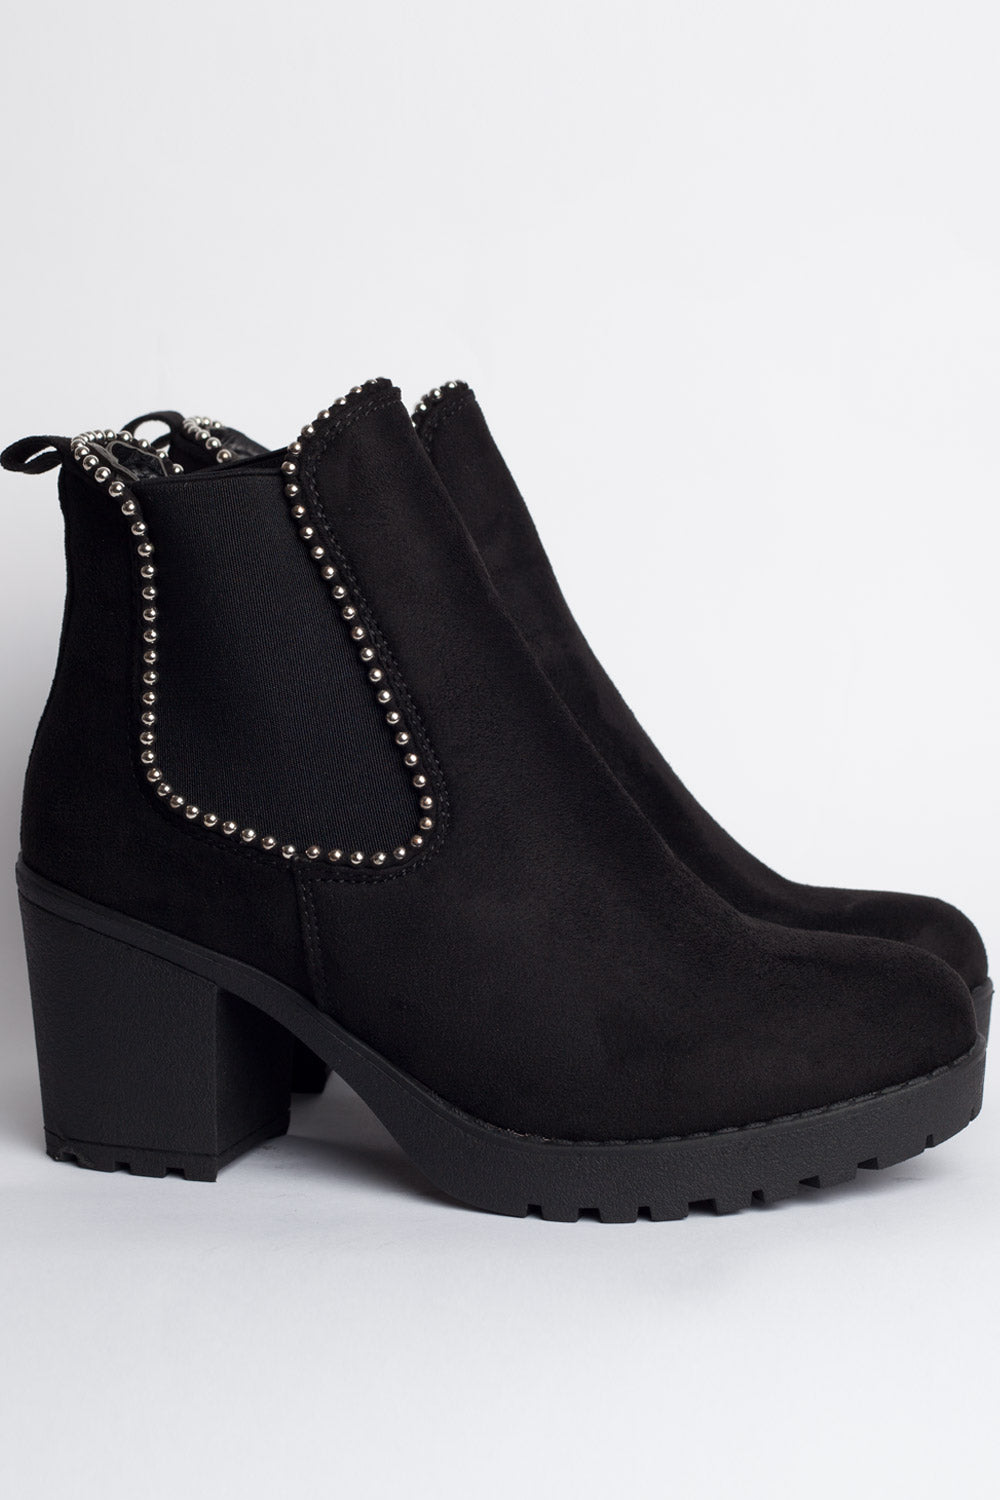 womens suede chelsea boots uk